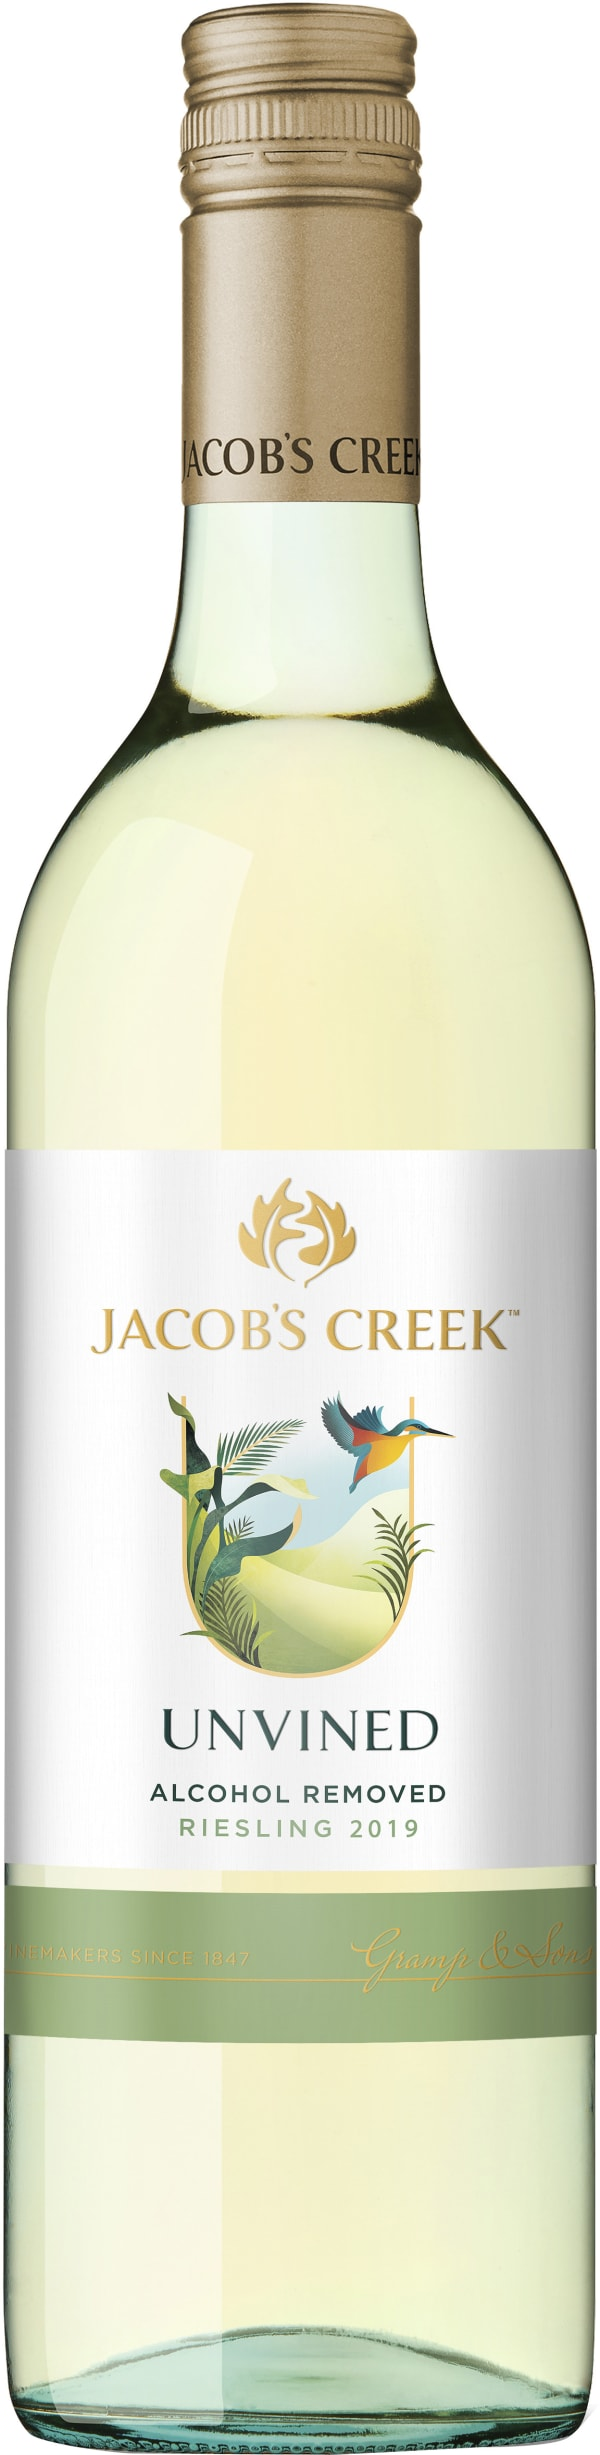 Jacob's Creek UnVined Riesling 2016